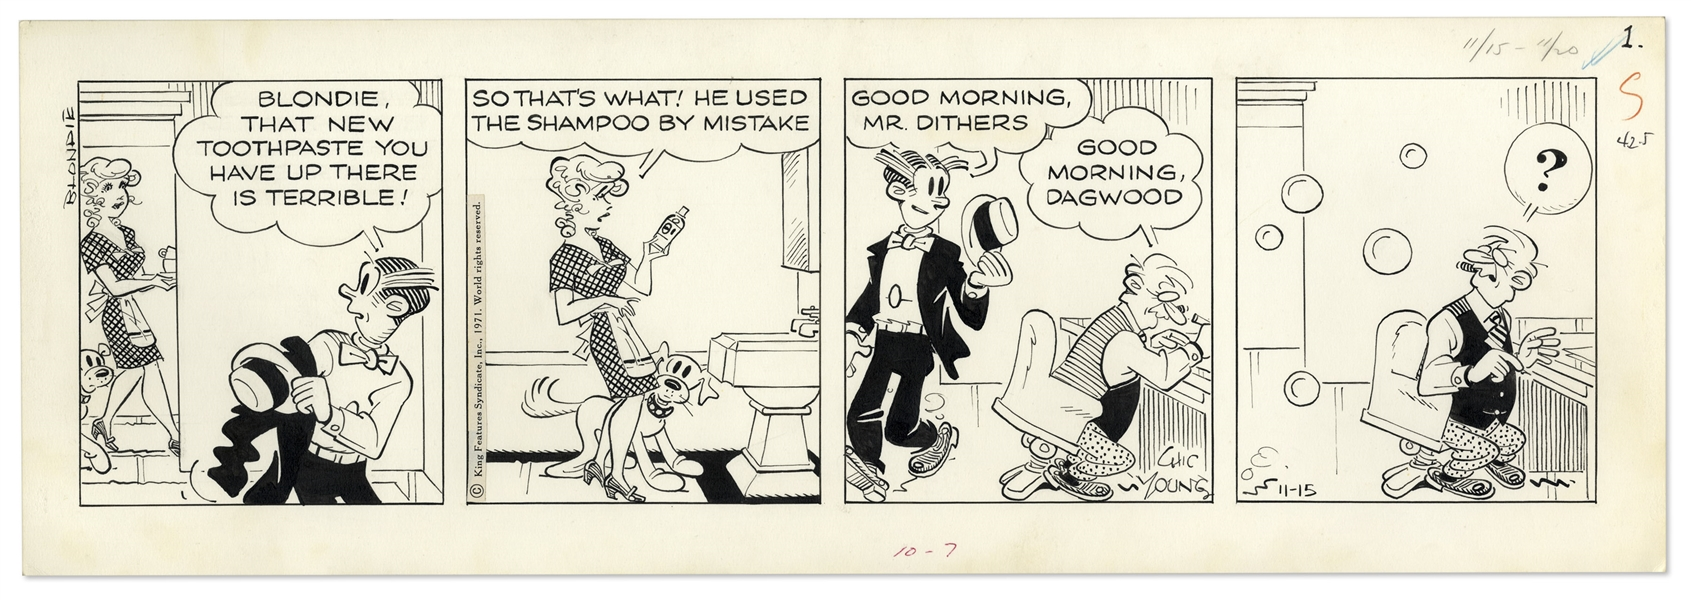 2 Chic Young Hand-Drawn ''Blondie'' Comic Strips From 1971 -- With Chic Young's Original Preliminary Artwork for Both